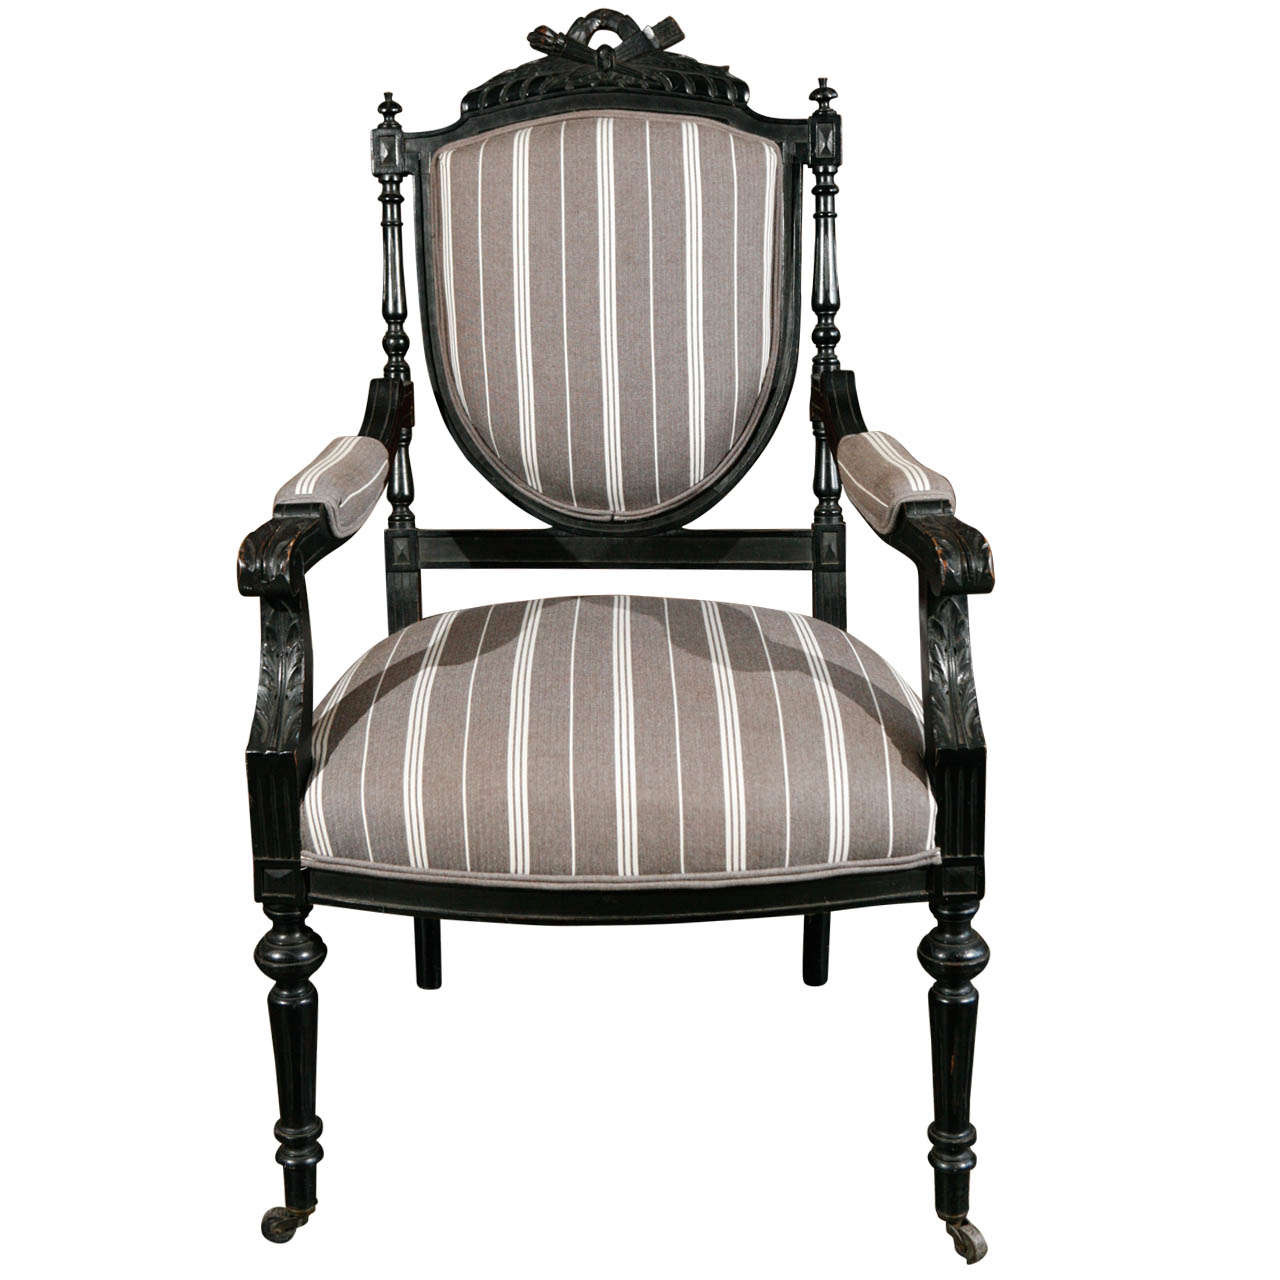 louis xvi style ebonized fauteuil circa 1870 for sale at 1stdibs. Black Bedroom Furniture Sets. Home Design Ideas